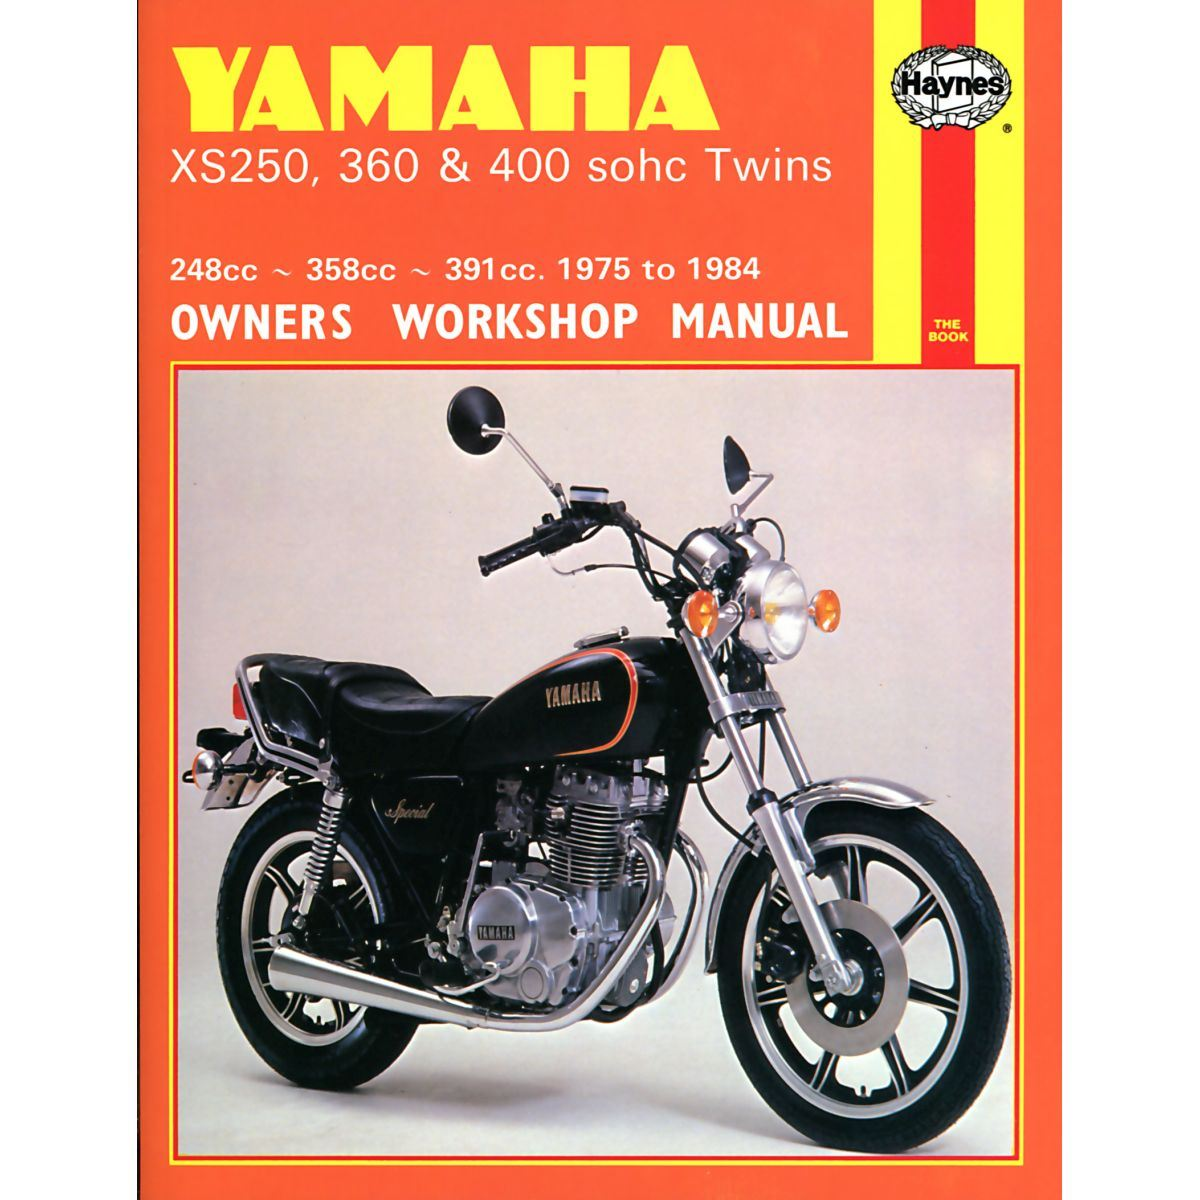 Manual Haynes For 1977 Yamaha Xs 400 D Sohc 2a2 9900 1981 Wiring Schematic